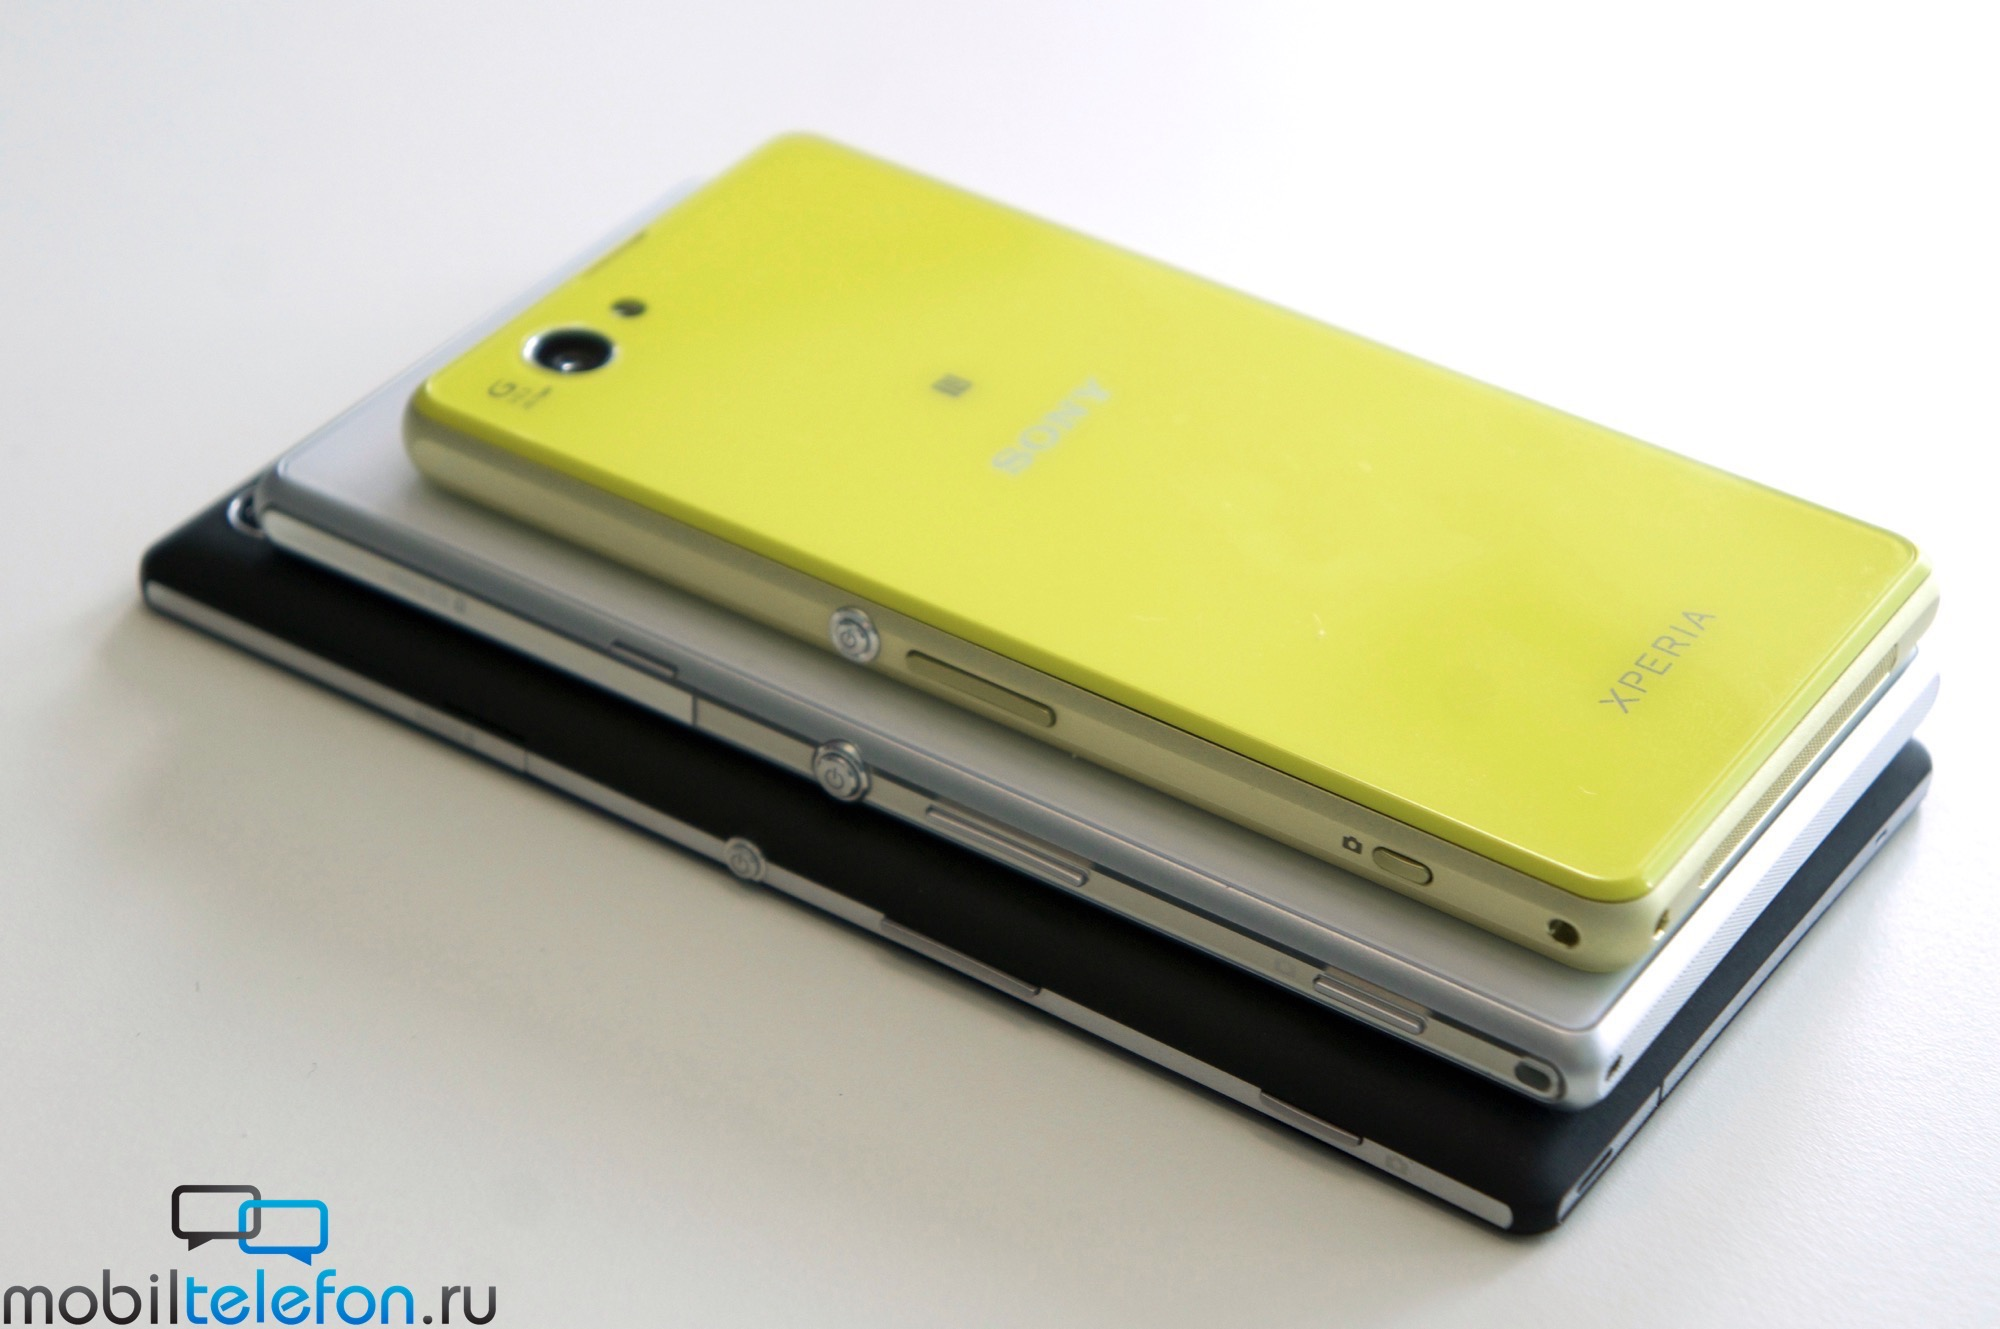 how to take screenshot on xperia z1 compact